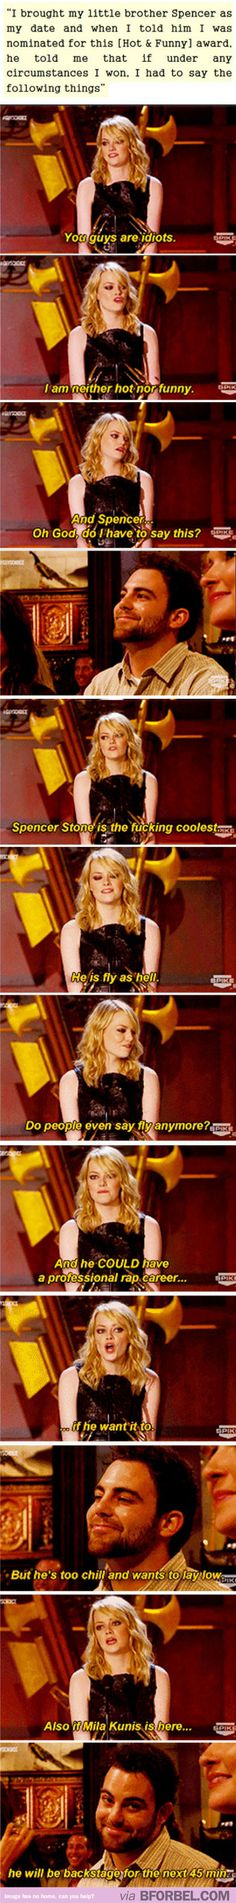 Why Emma Stone is the best. Love her!